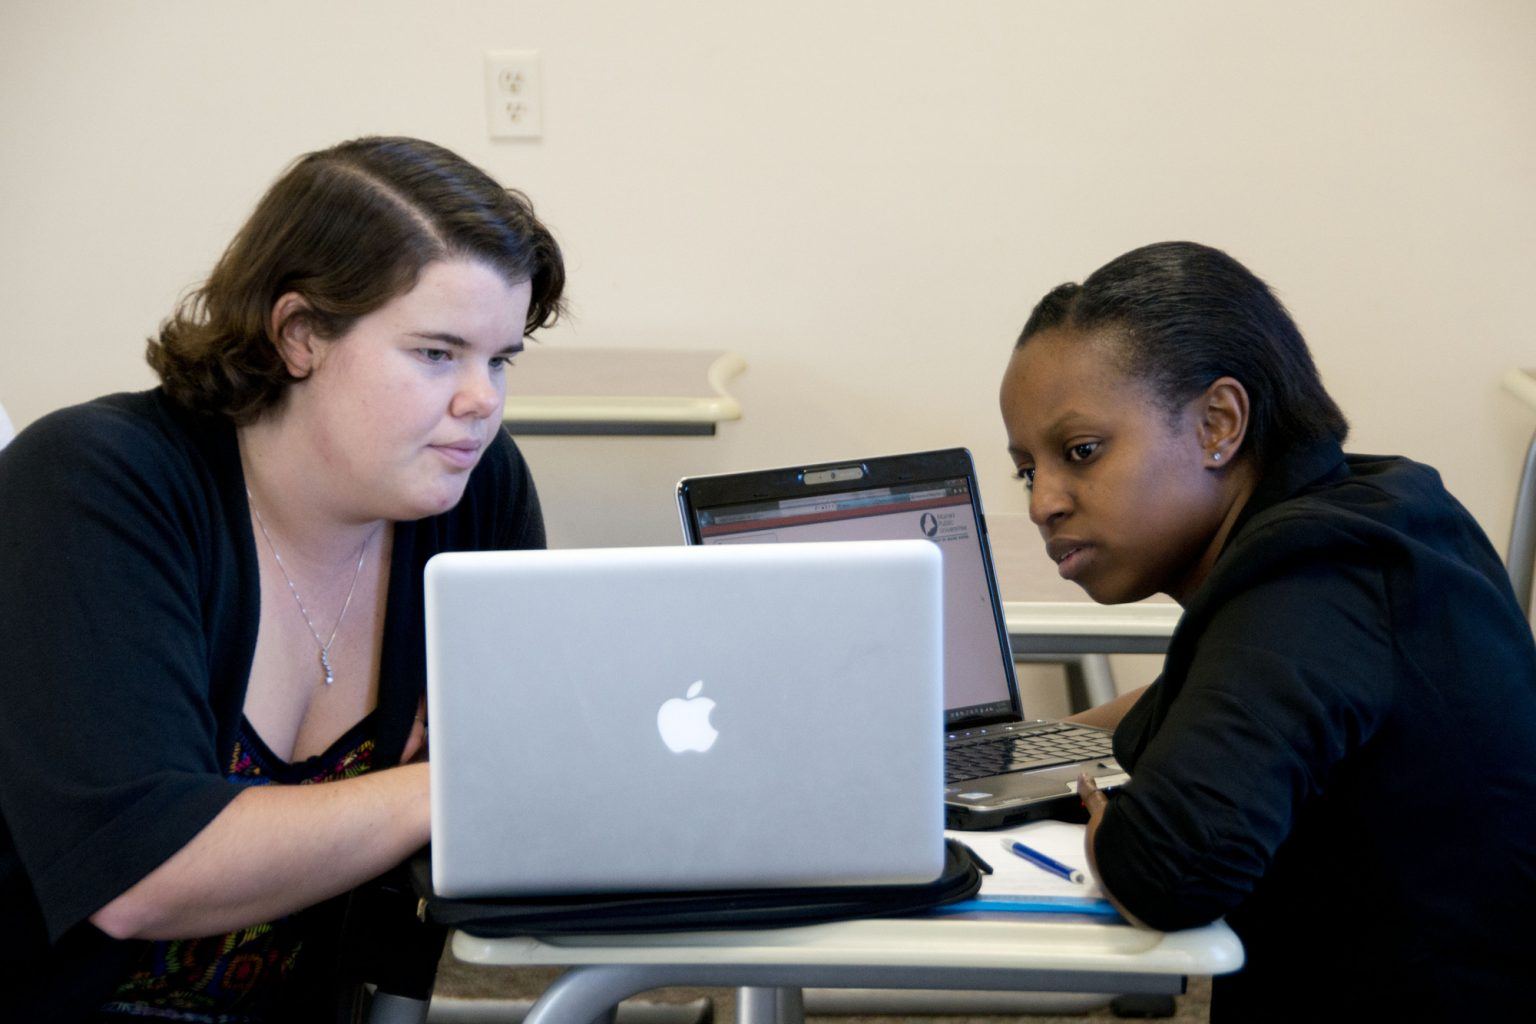 2 female students looking at computer screen